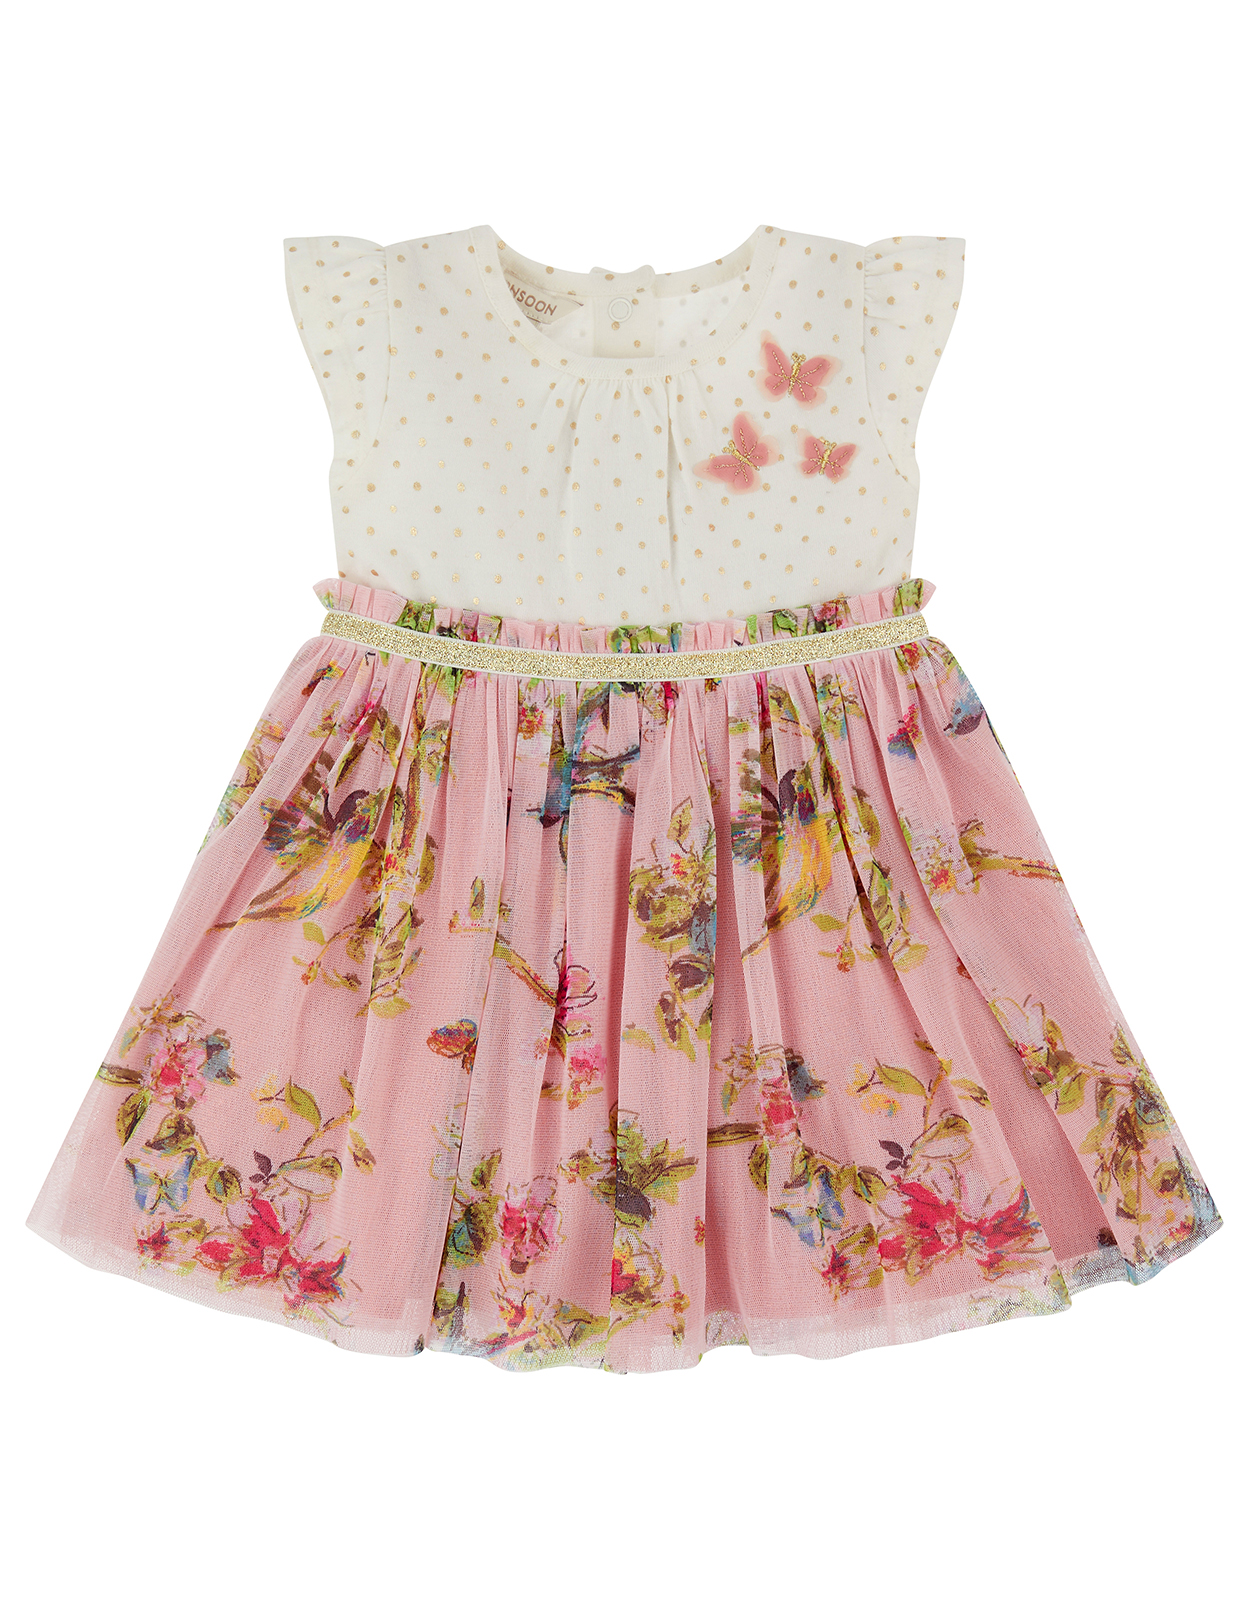 Monsoon Newborn Baby Hummingbird 2 in 1 Dress